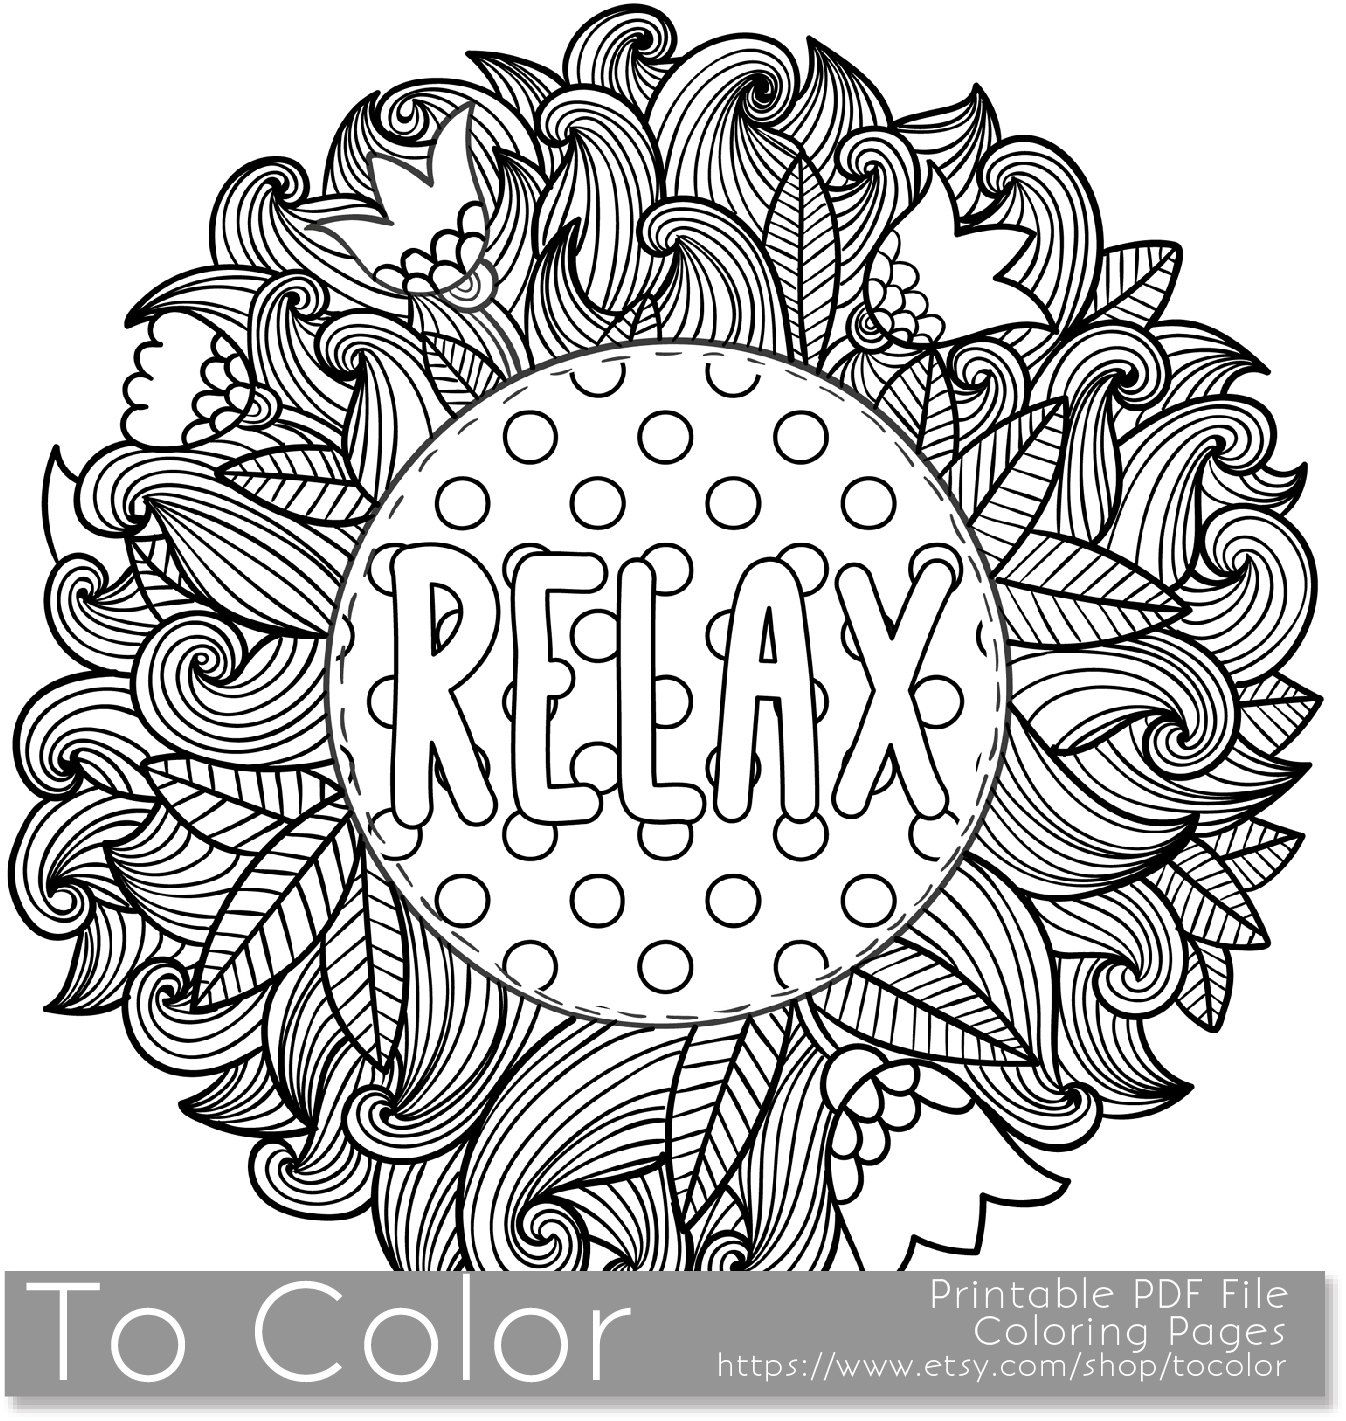 Printable Relax Coloring Page For Adults PDF JPG Instant Download Sentiment Coloring Book